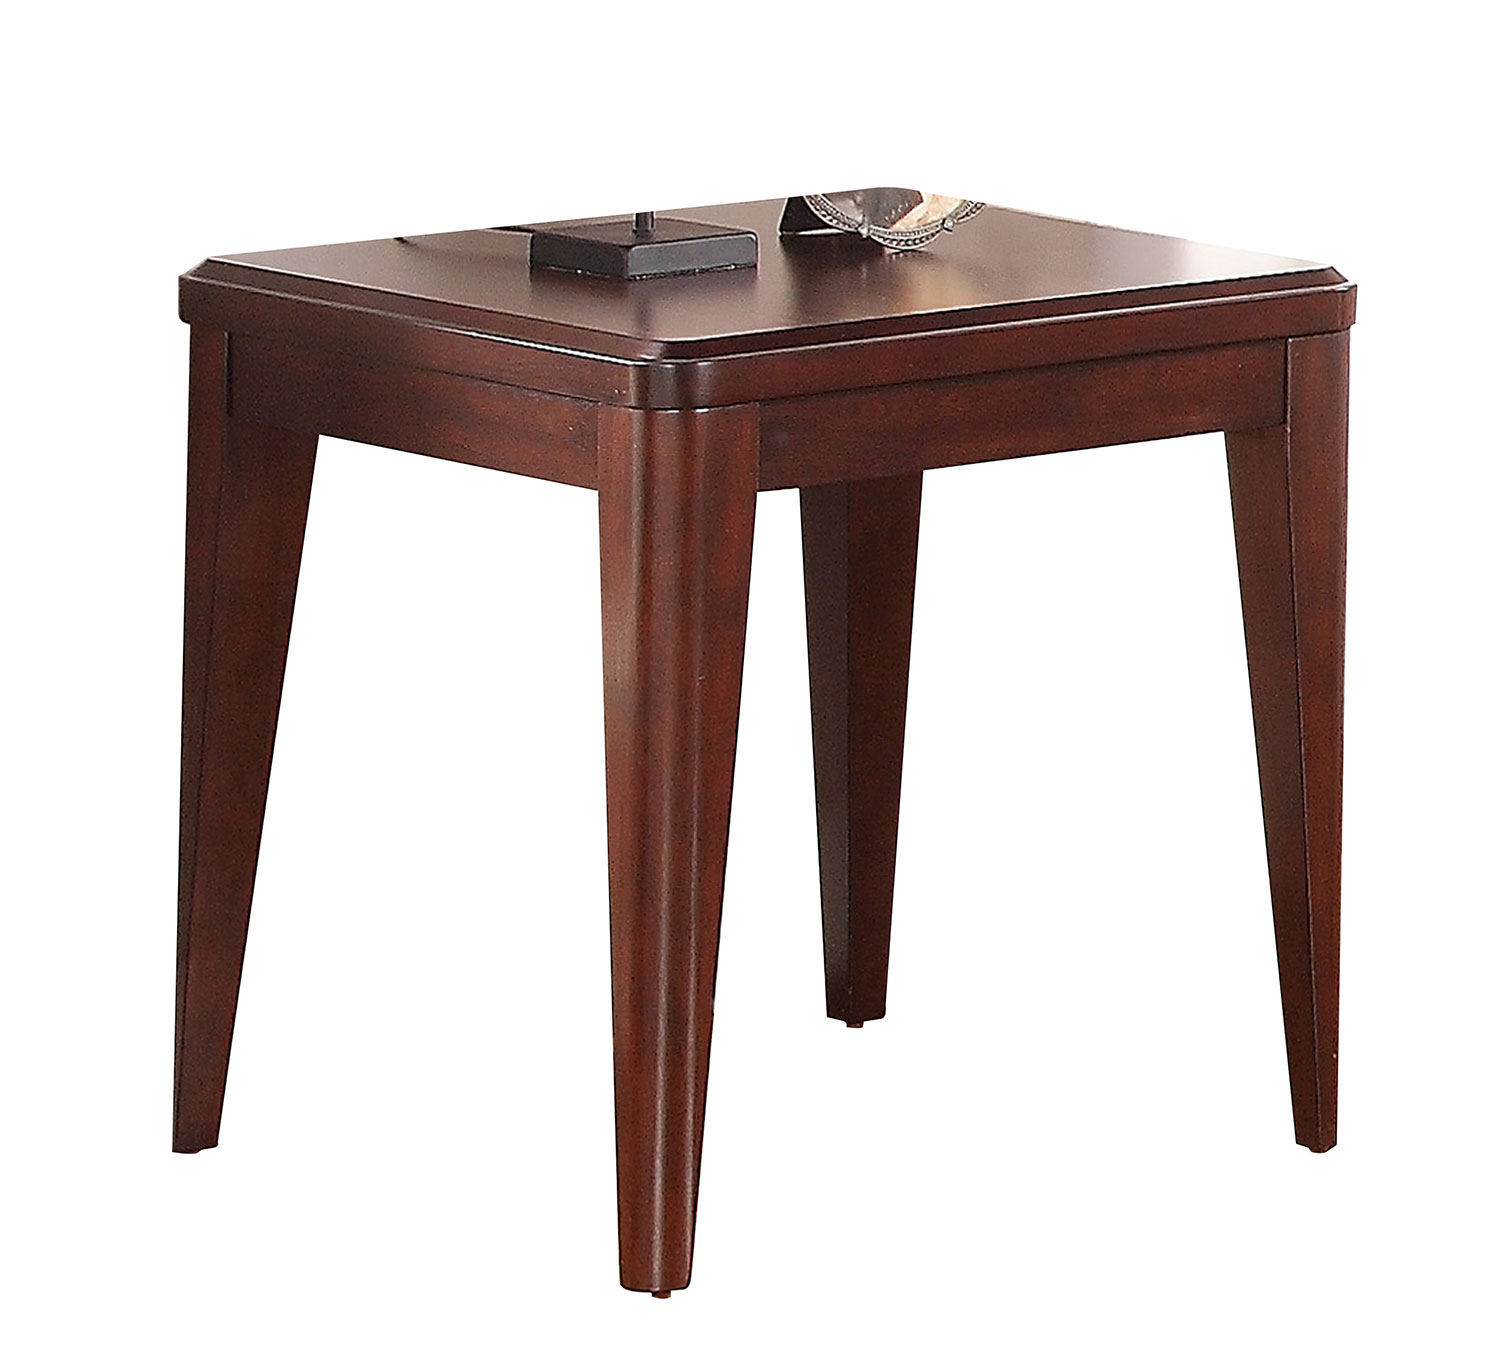 Homelegance Beaumont End Table - Brown Cherry